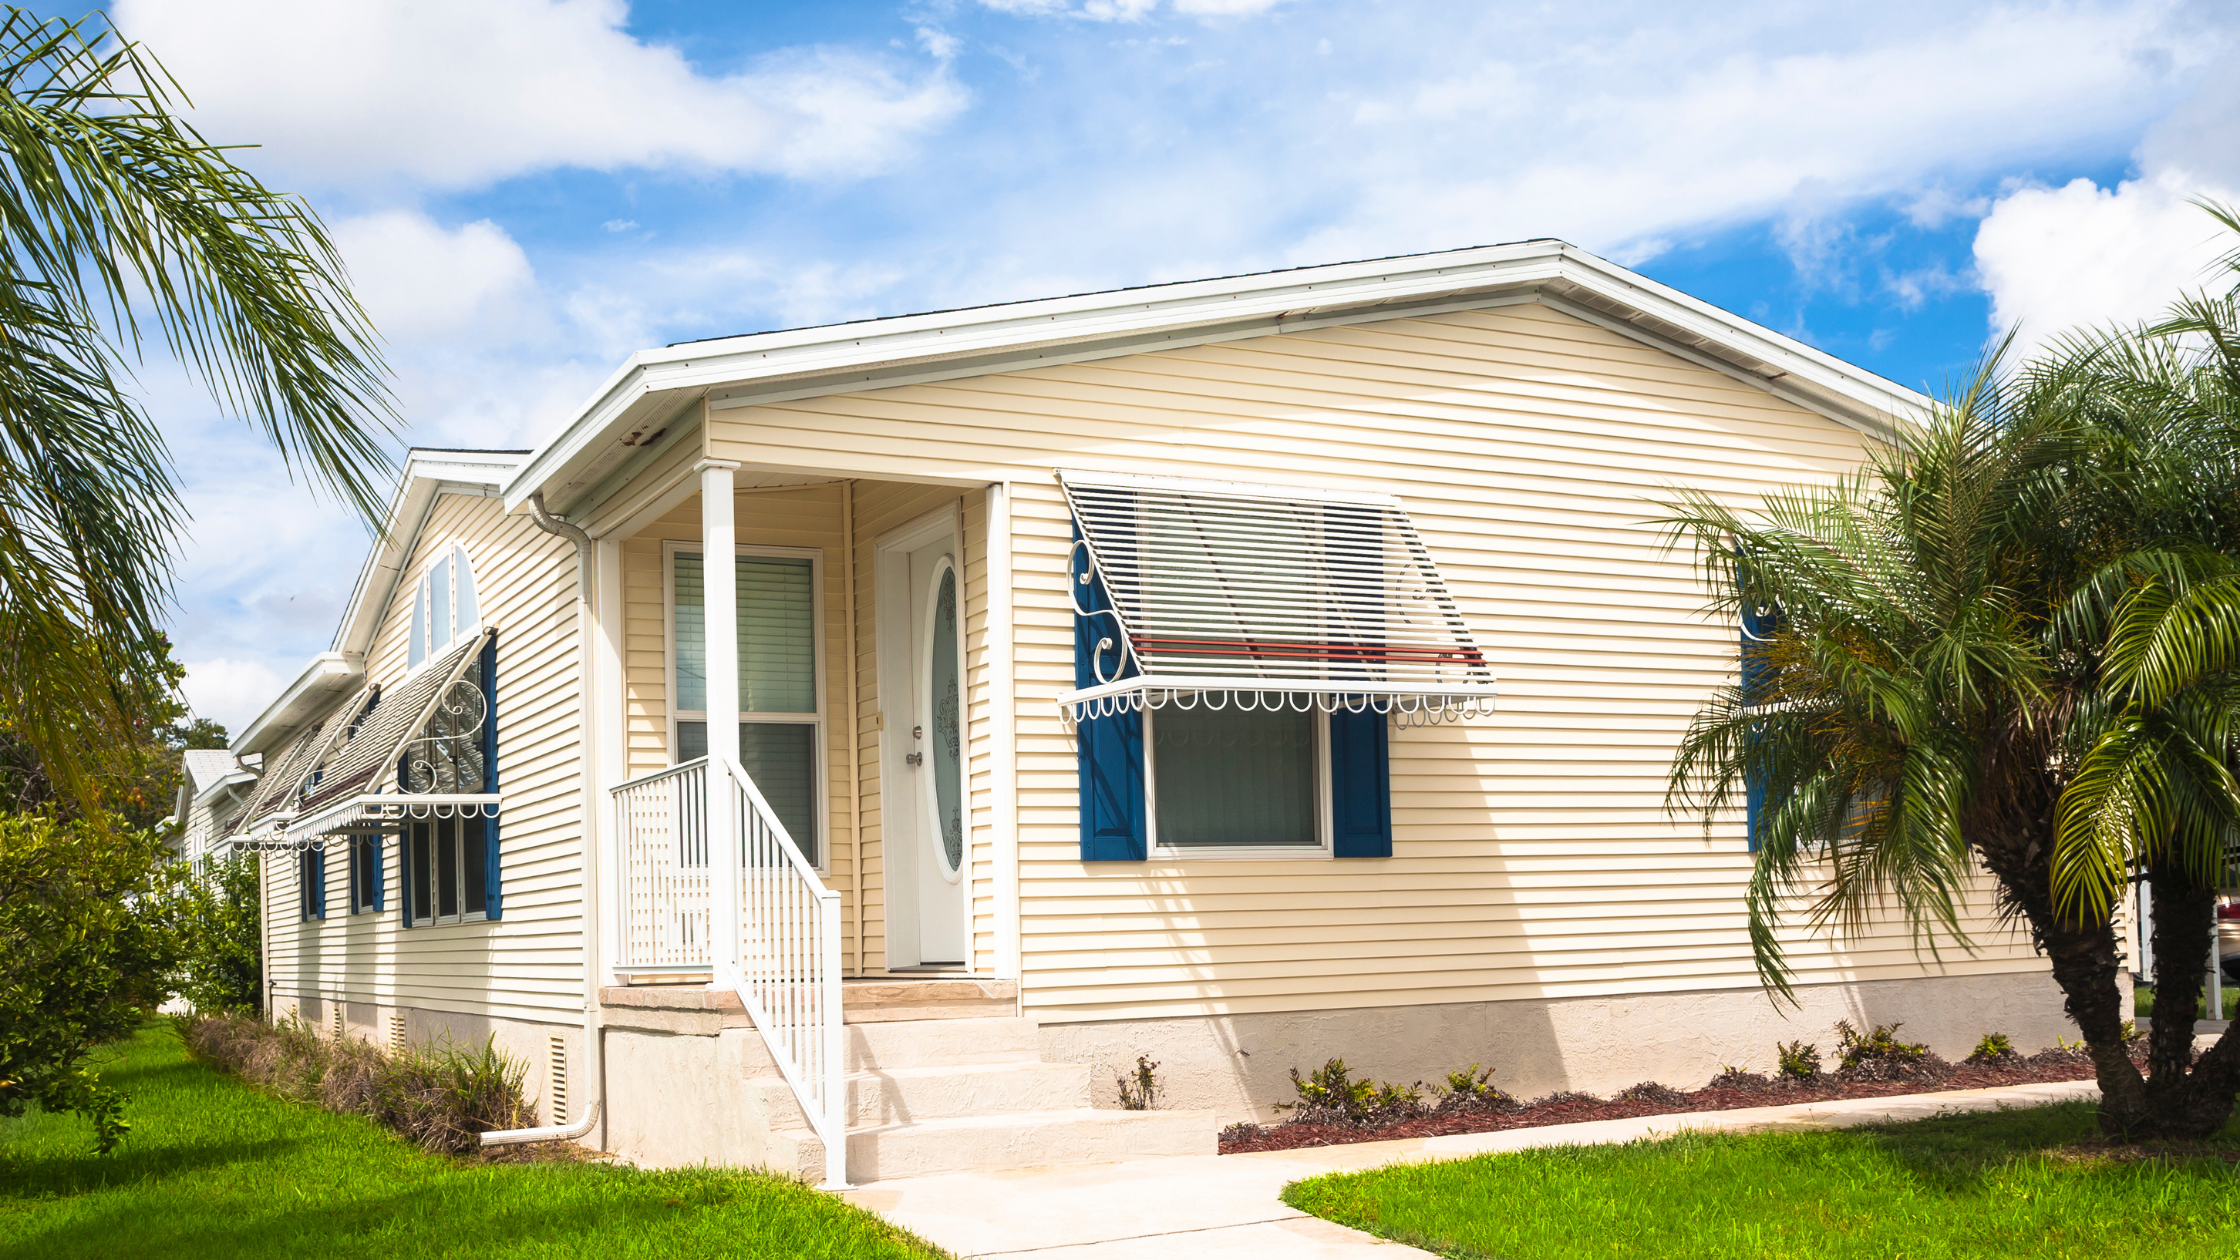 Can a Manufactured Home Be Real Property?